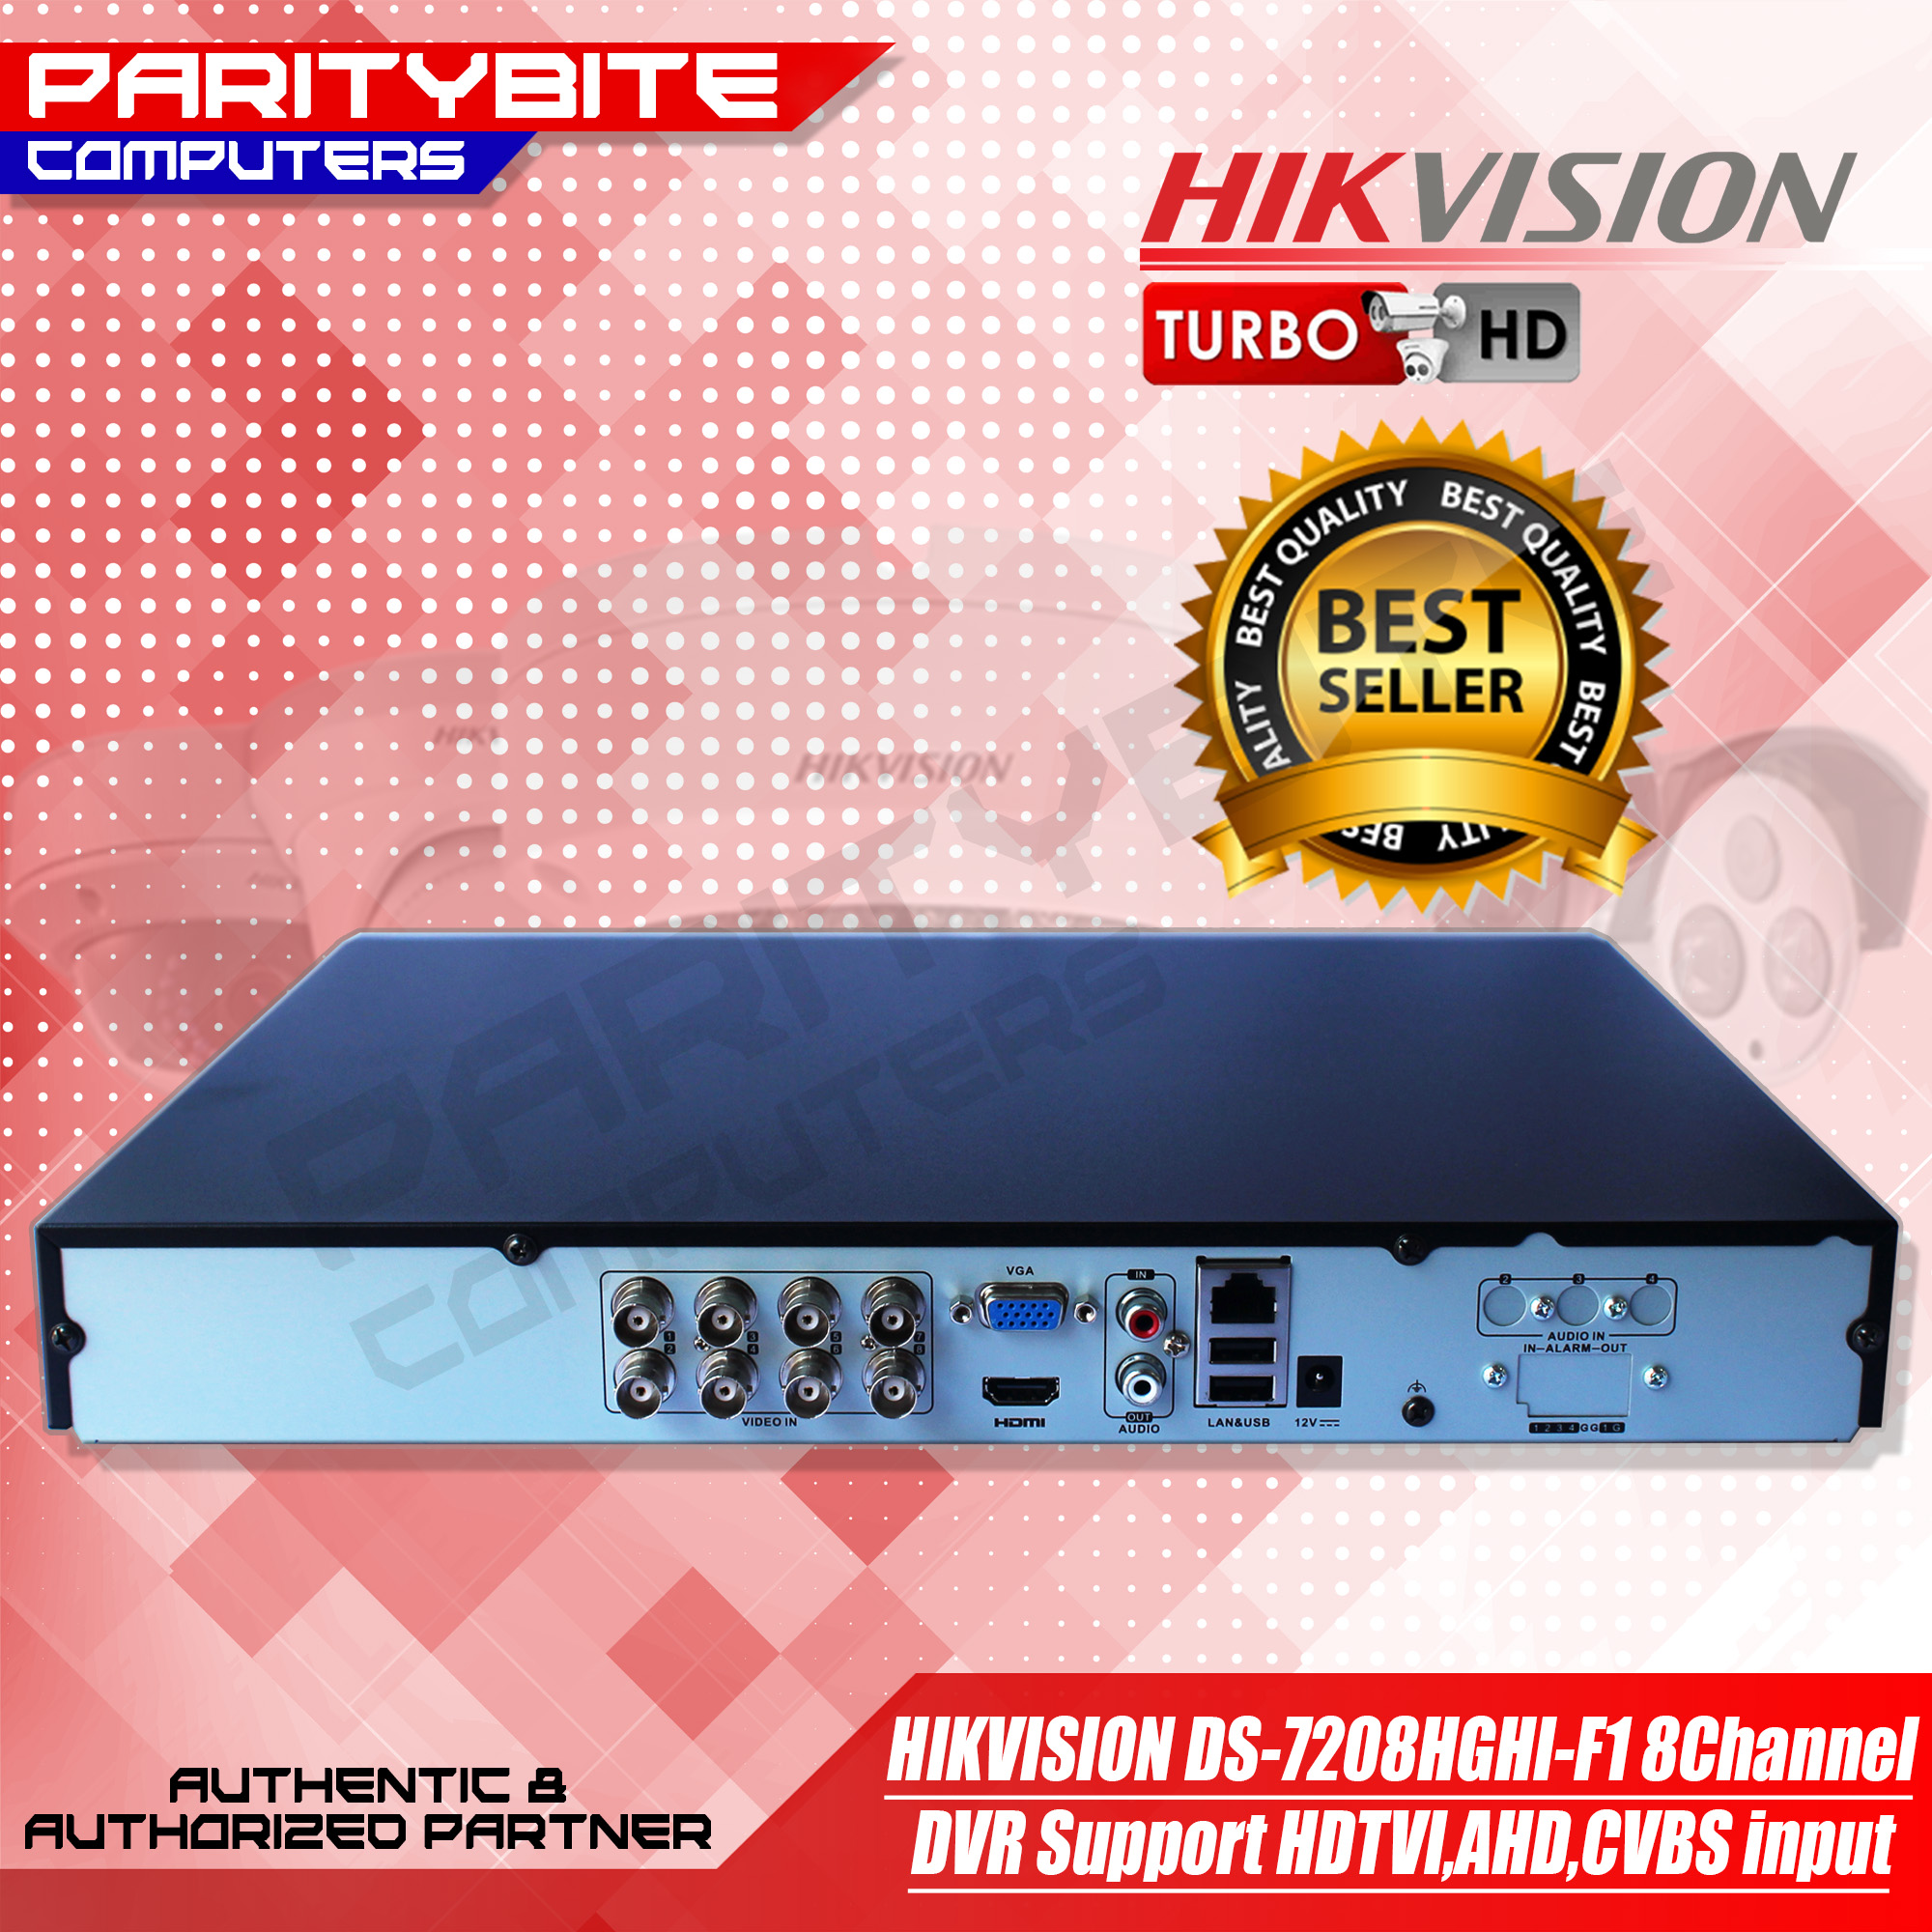 HIKVISION DS-7208HGHI-F1 8Channel DVR Support HDTVI,AHD,CVBS input